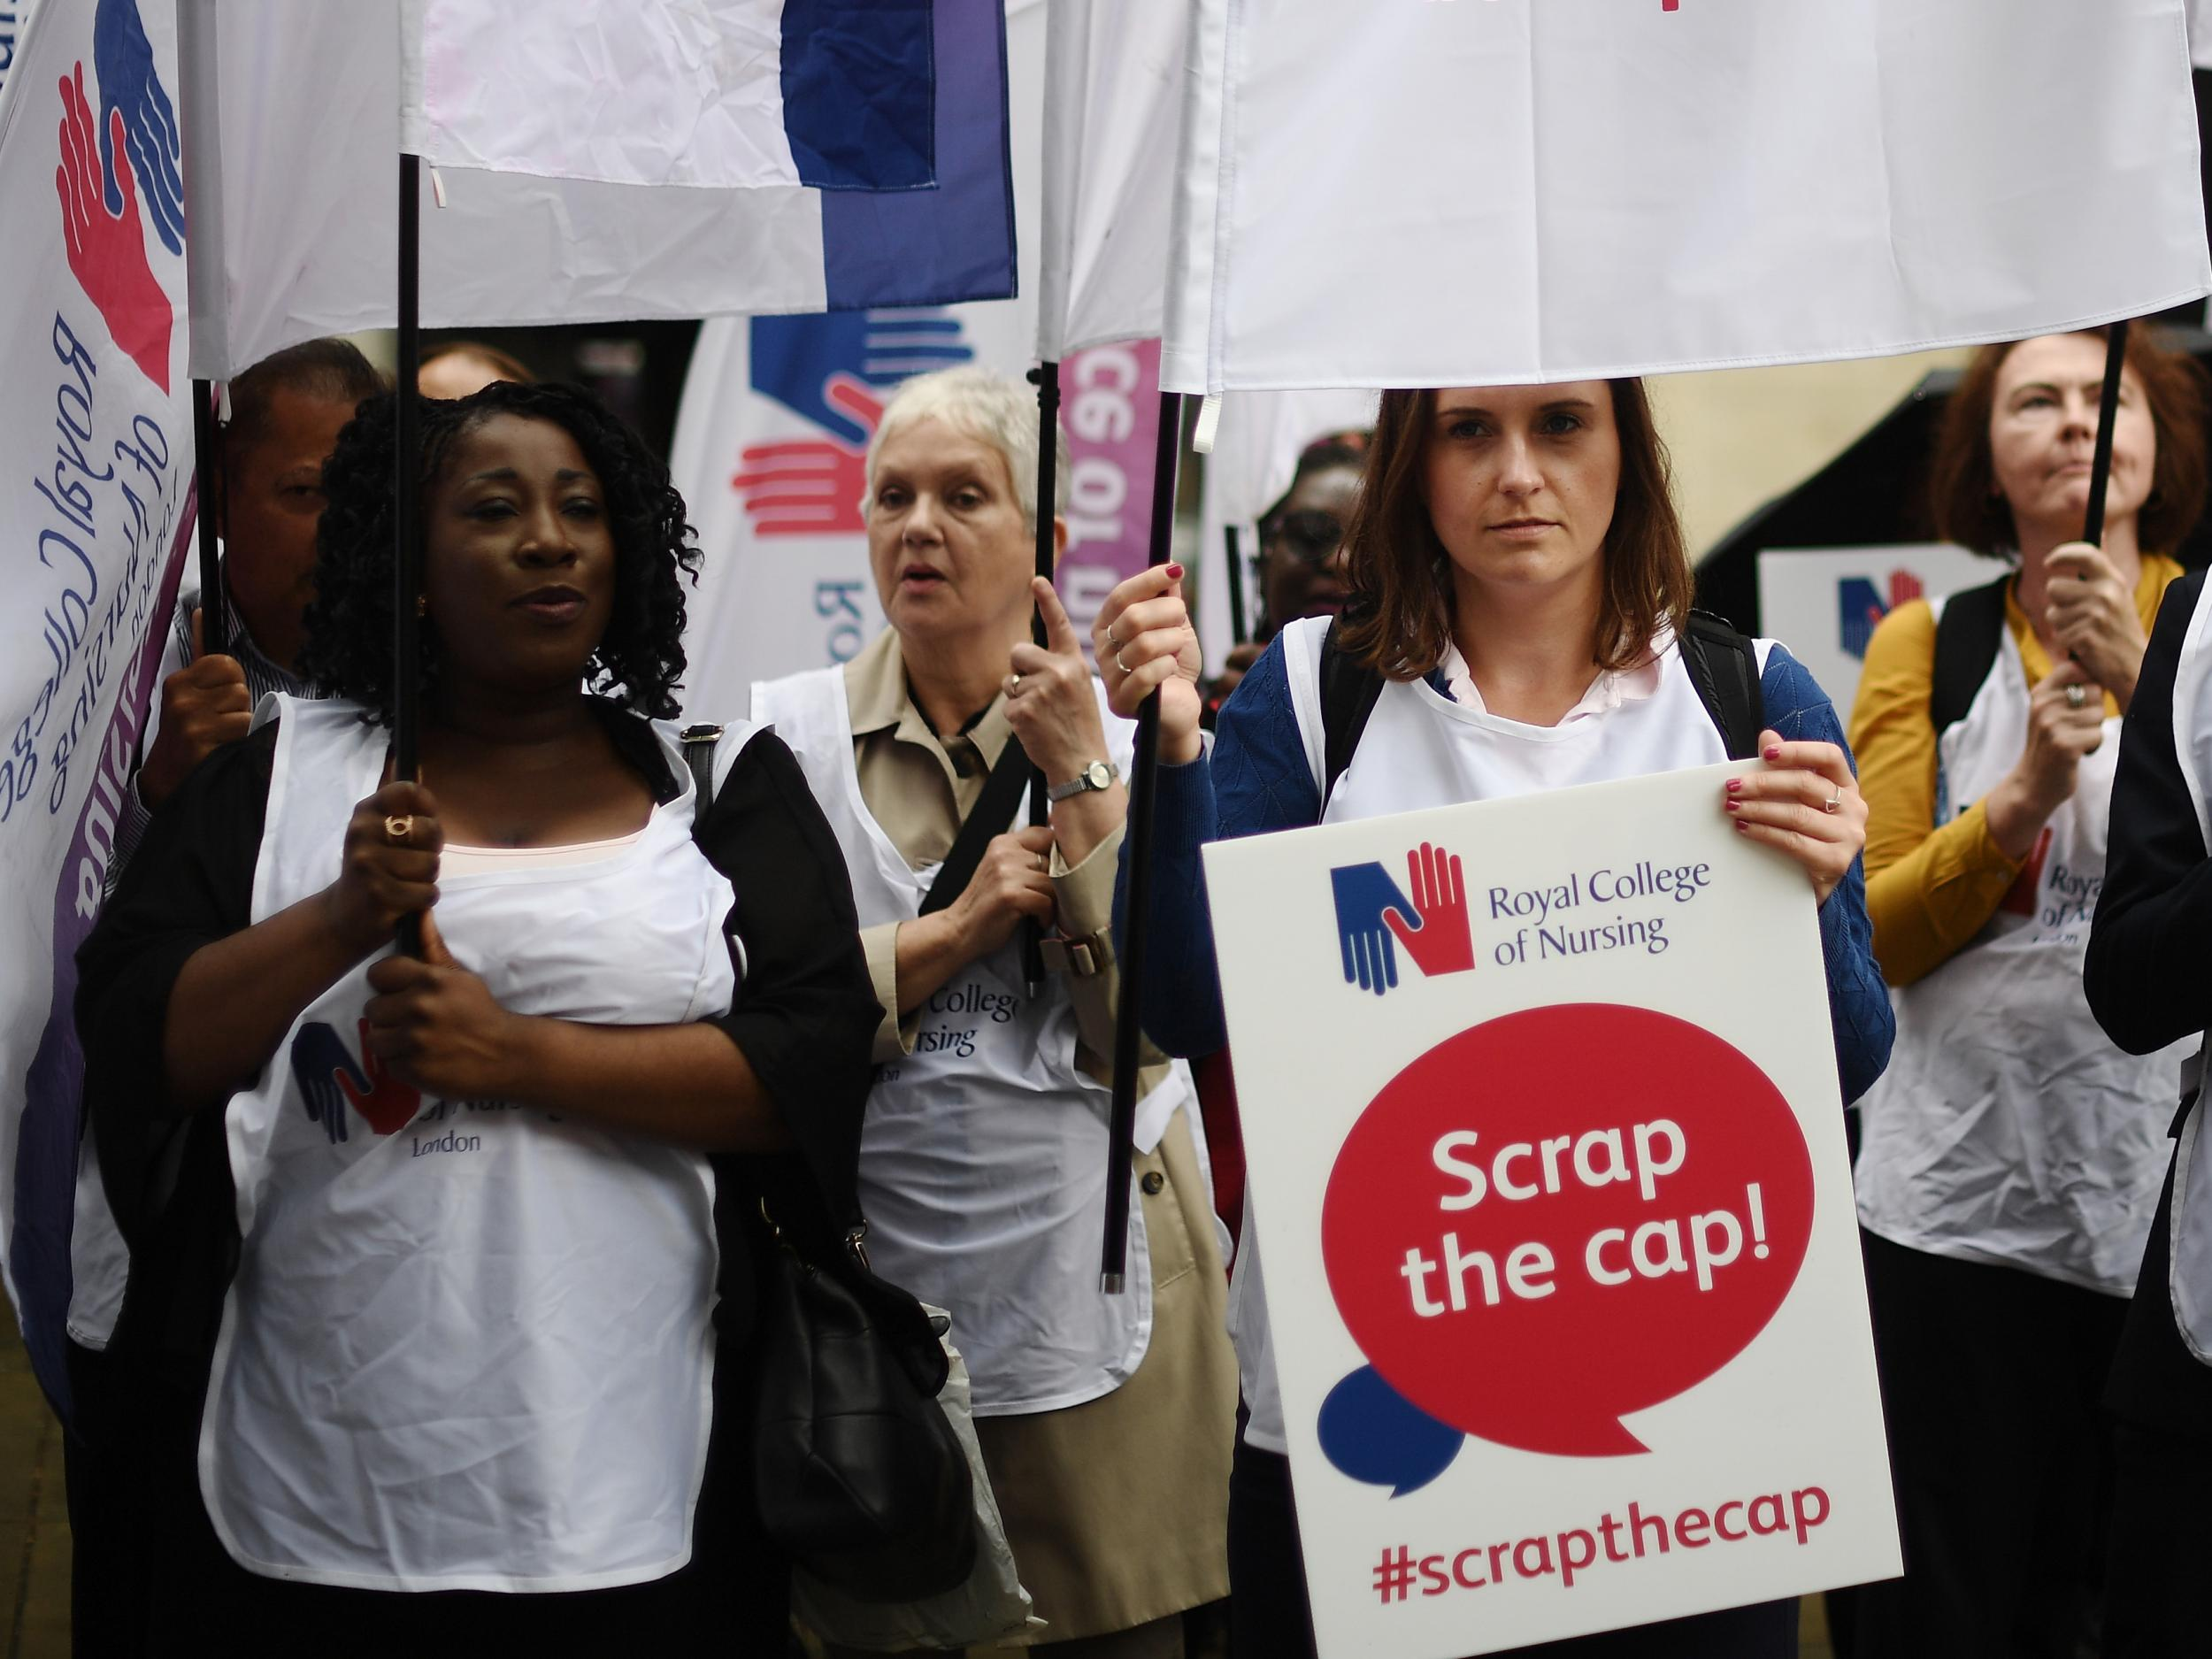 NHS nurses protest outside Health Department over low pay amp